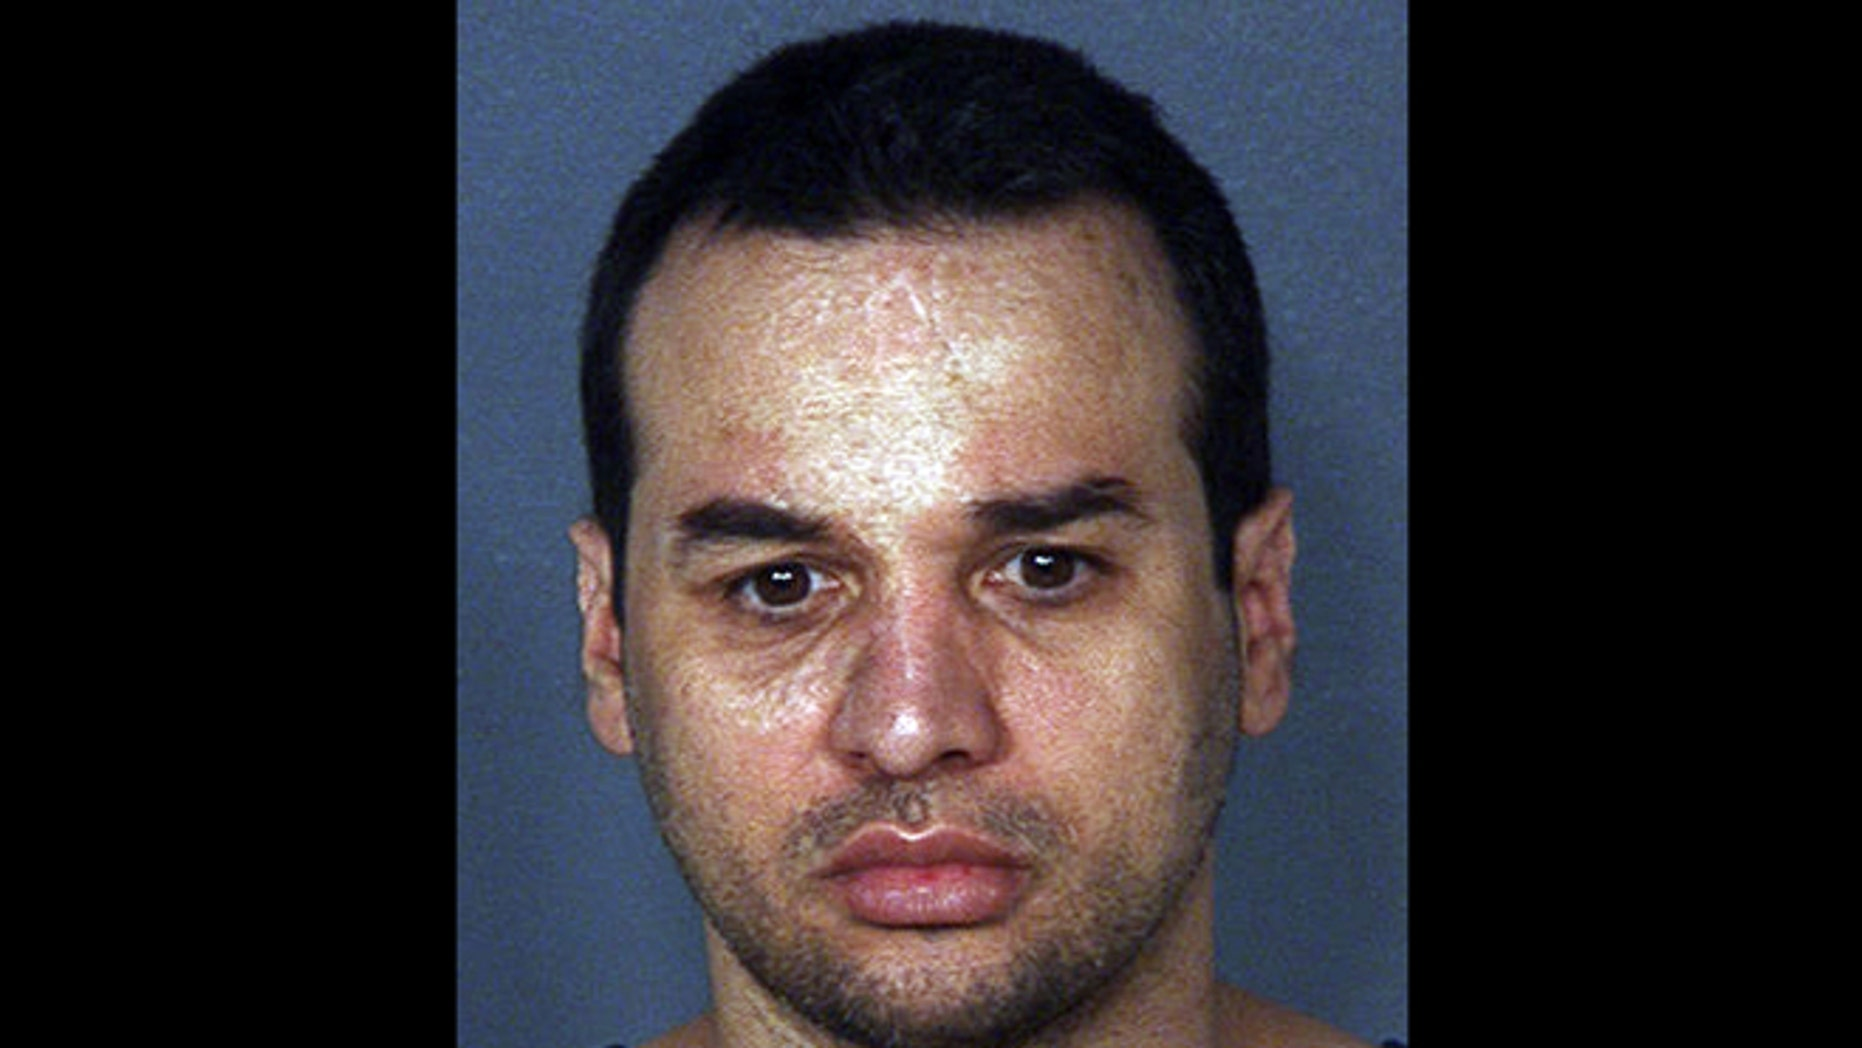 This 2007 image provided by the Las Vegas Metropolitan Police Department shows Alberto Morales.